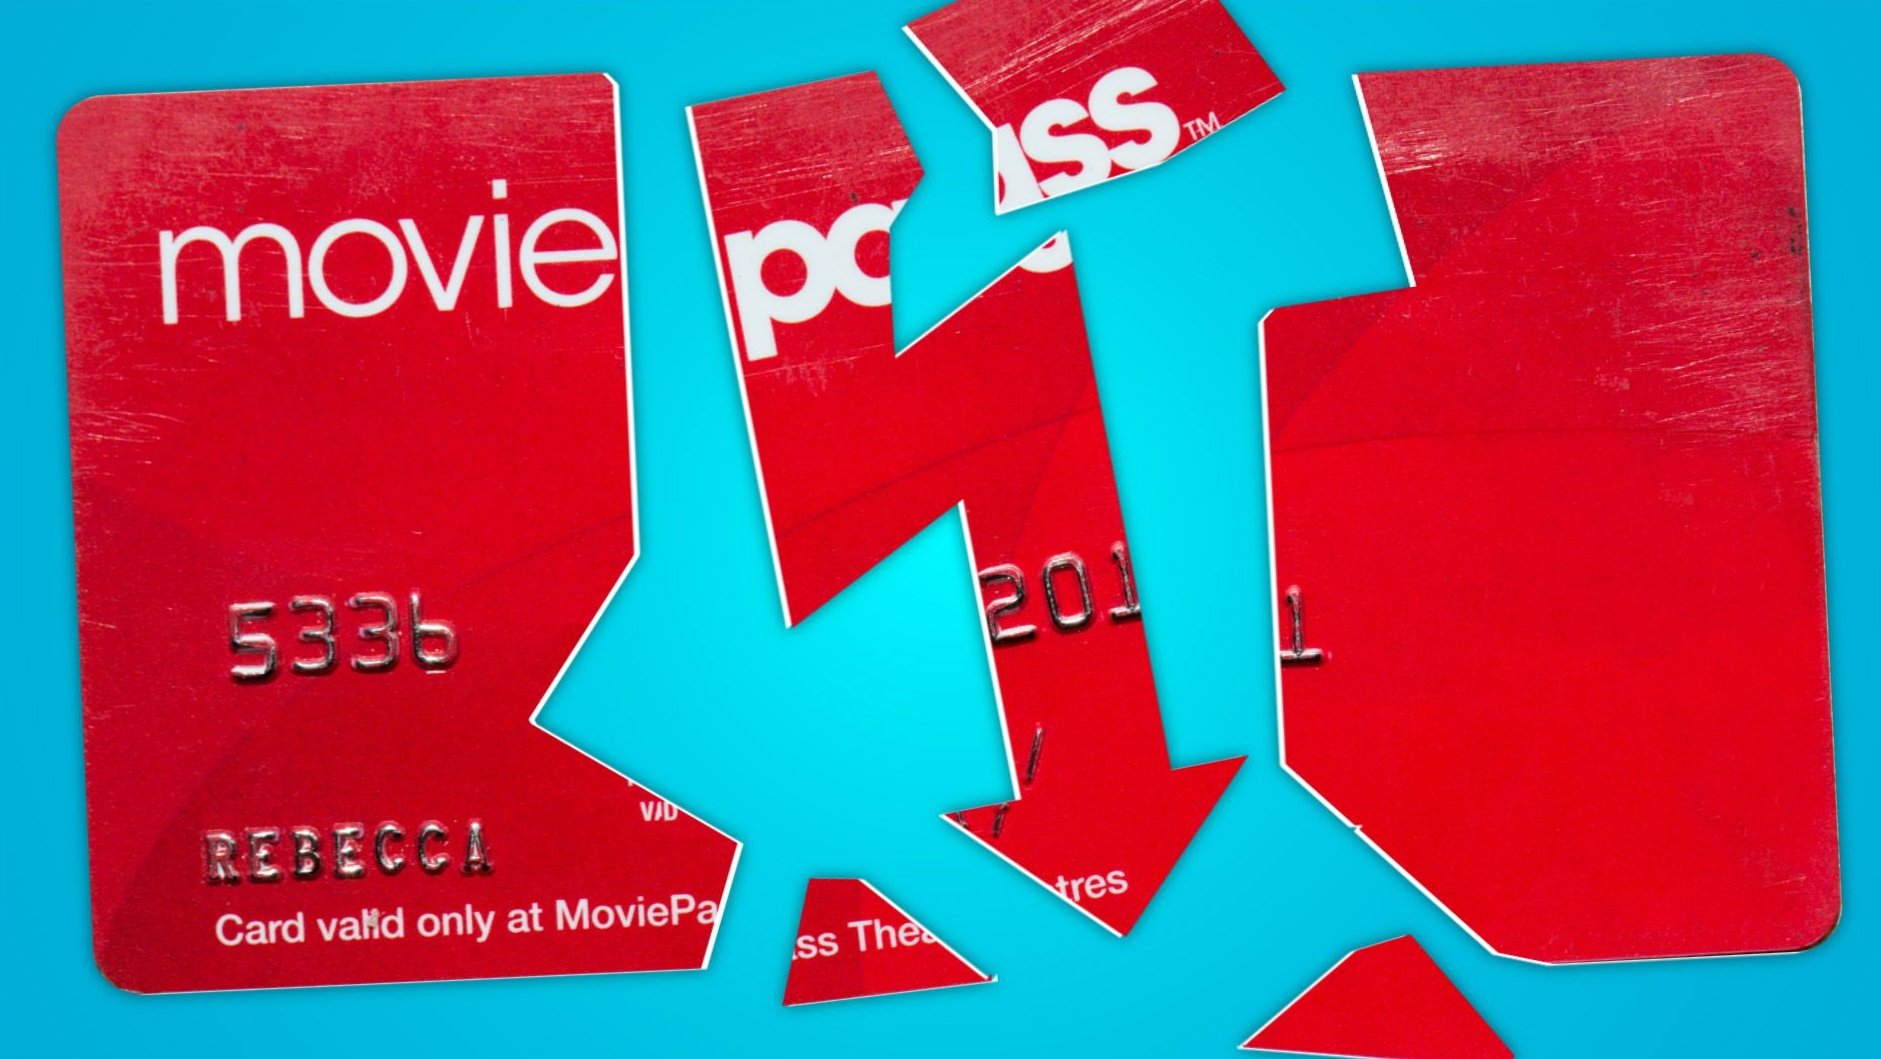 Three theories on why MoviePass failed